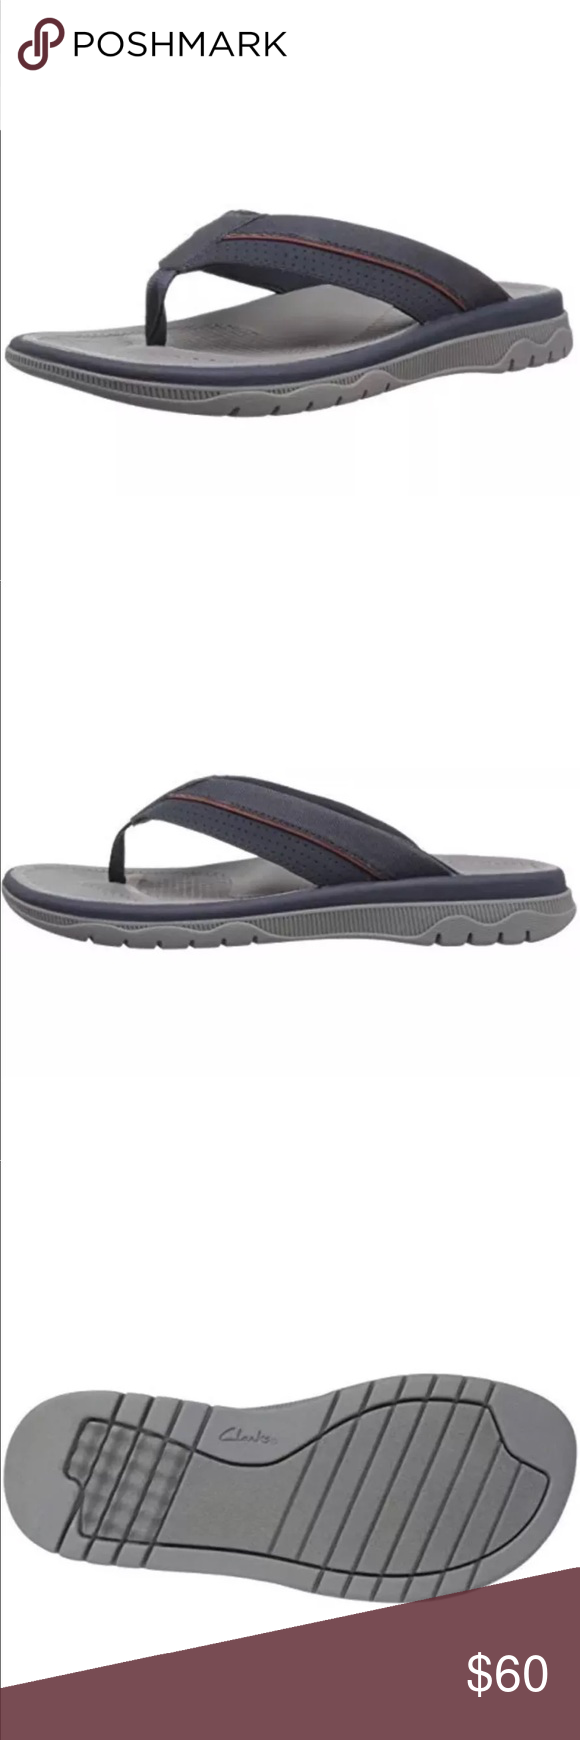 7151a92f2eb2 Balta Sun cloudsteppers The balta sun by Clarks cloudsteppers is an  ultra-lightweight and flexible